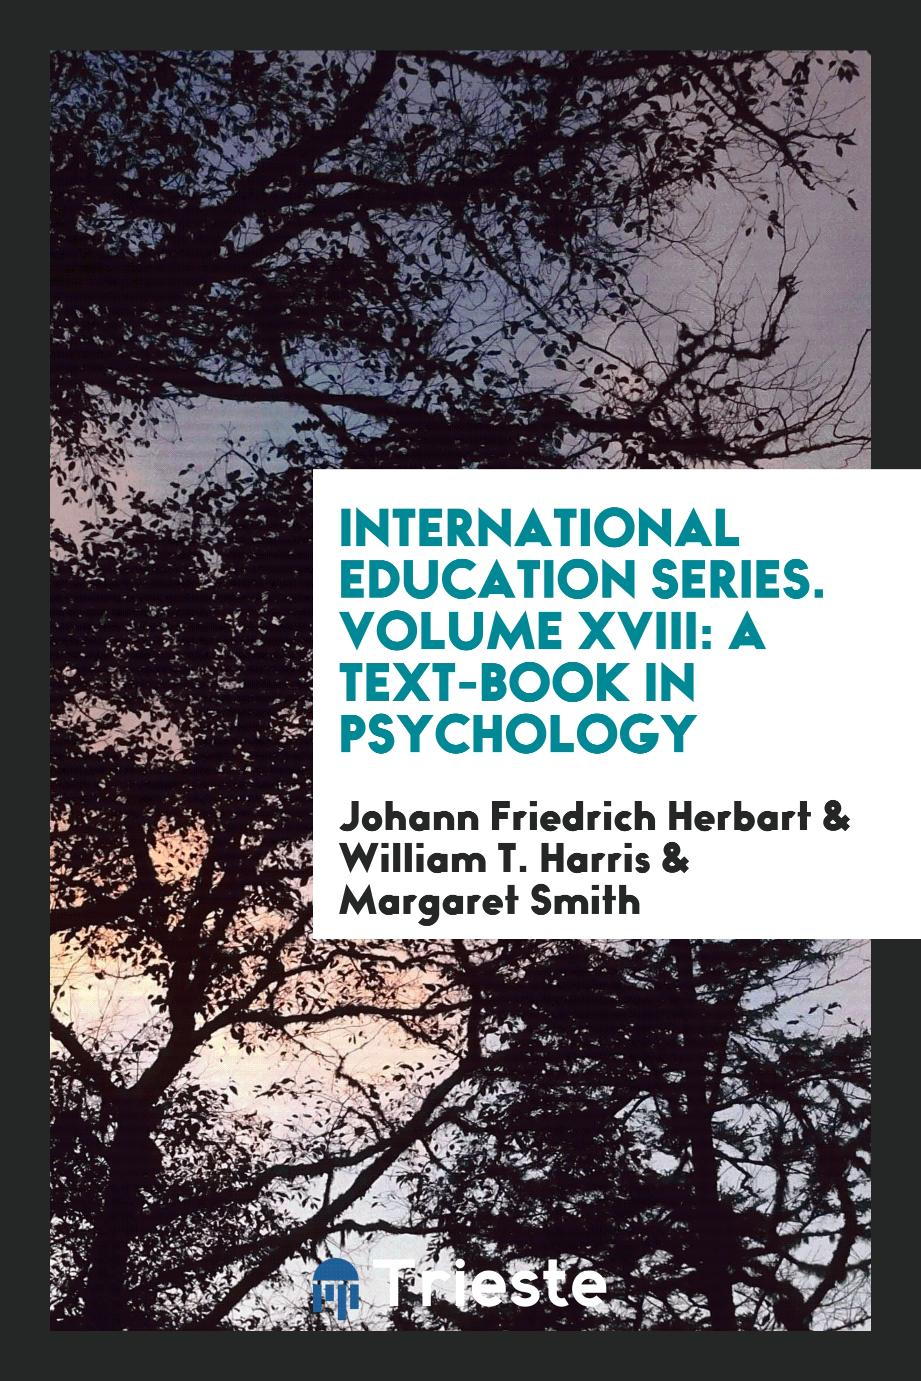 International Education Series. Volume XVIII: A Text-Book in Psychology